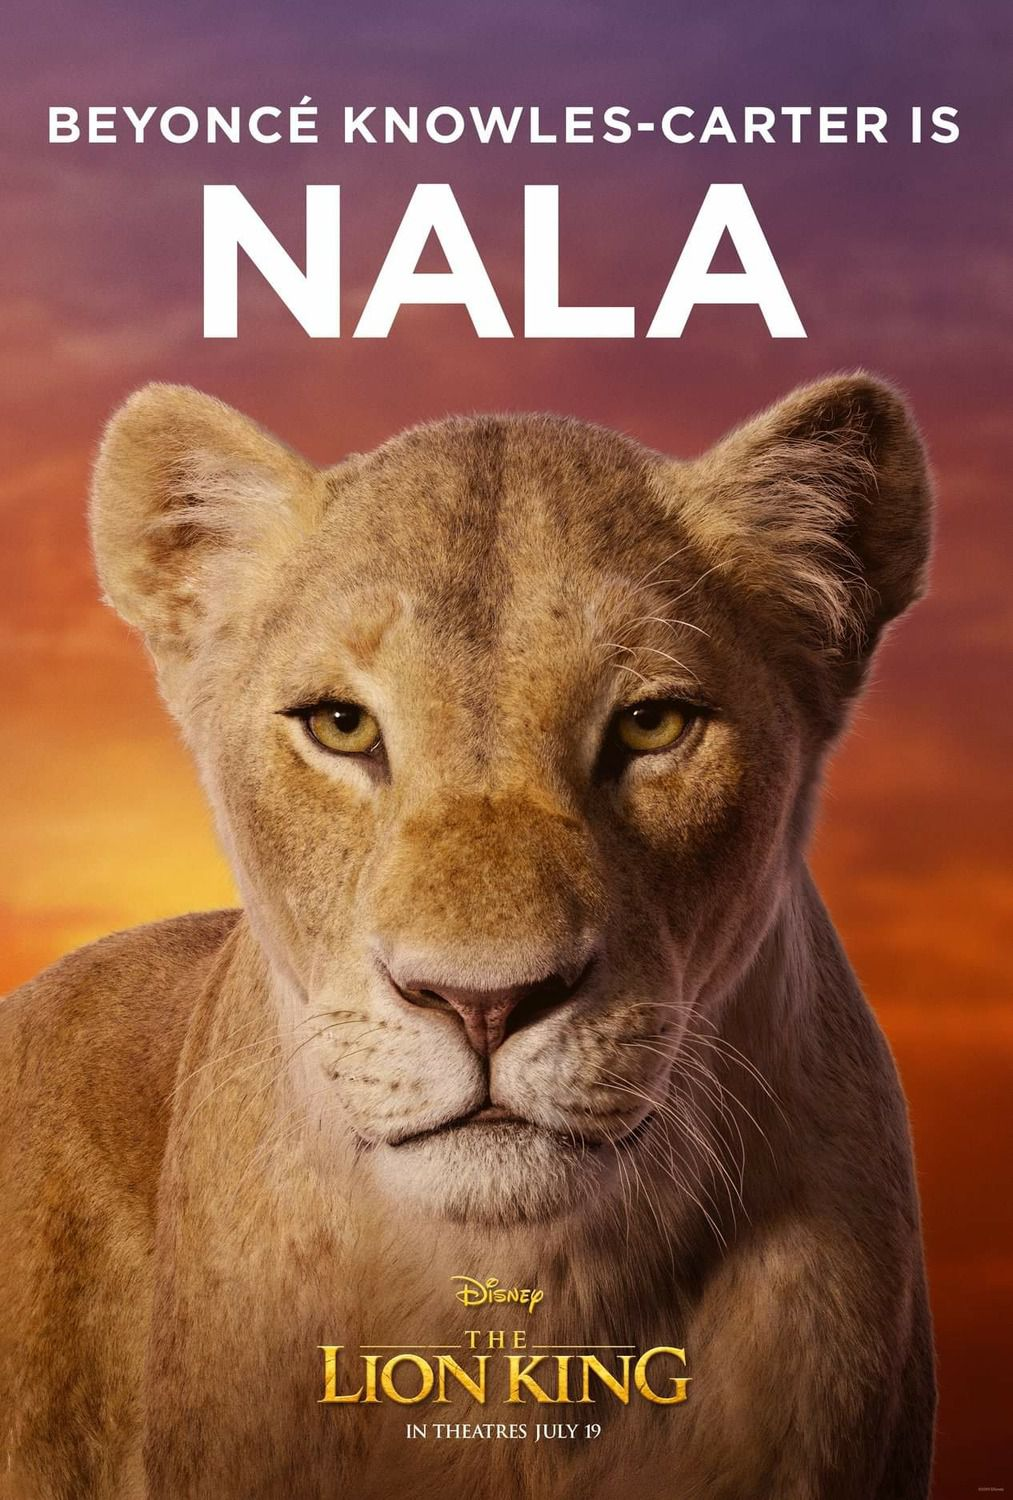 Beyonce Knowles-Carter is Nala